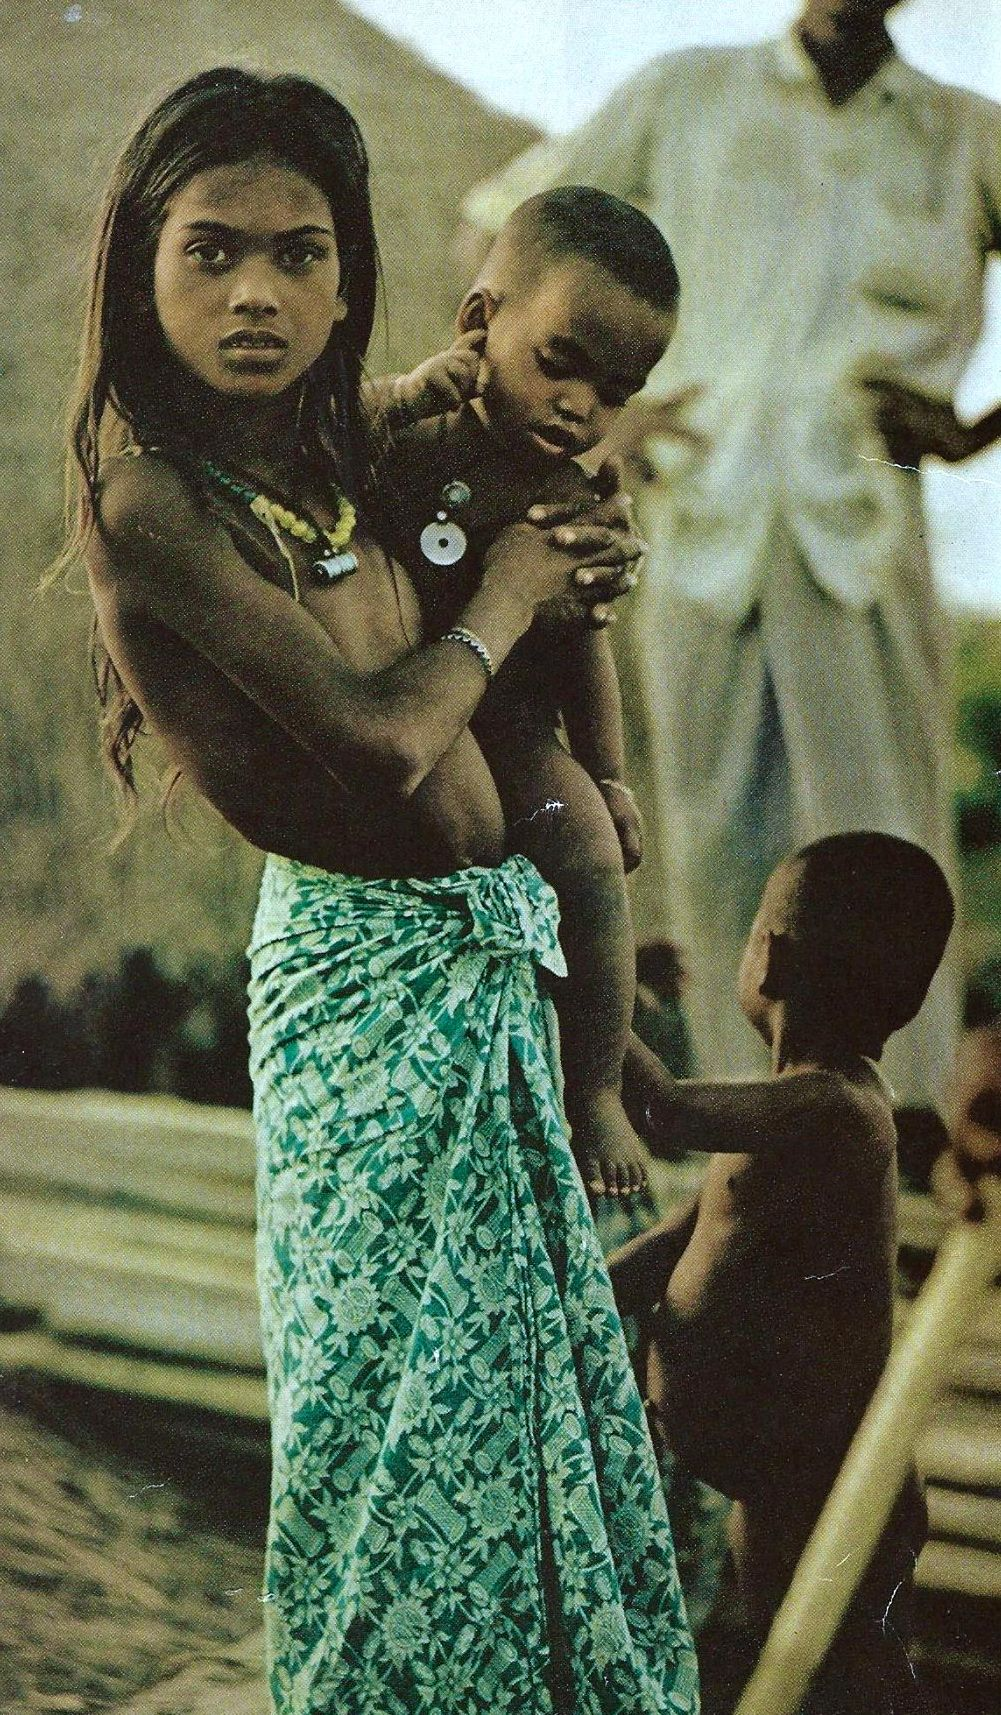 Vintage National Geographic National Geographic Photography World Photography A Well Traveled Woman